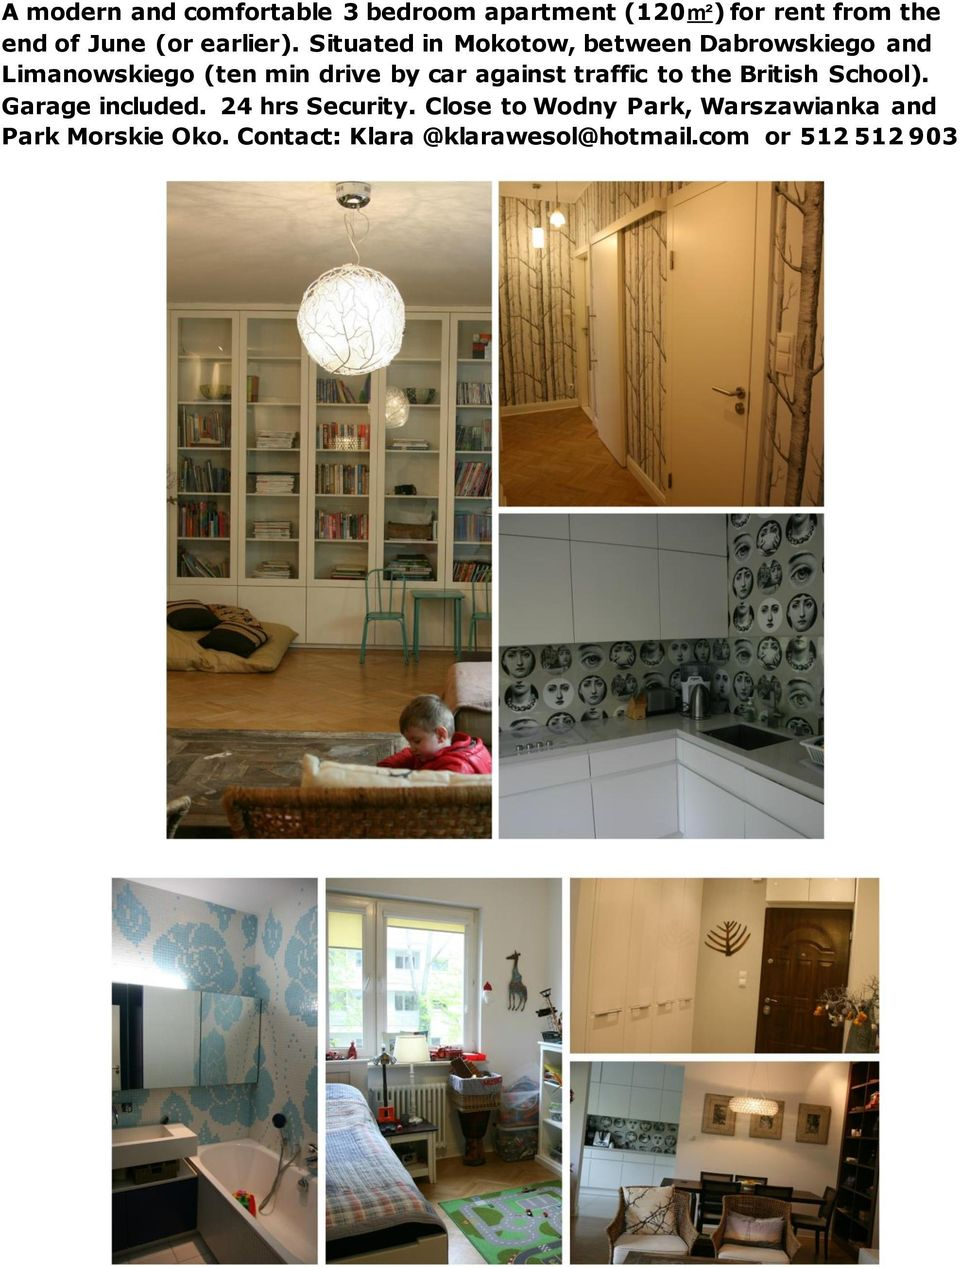 Situated in Mokotow, between Dabrowskiego and Limanowskiego (ten min drive by car against